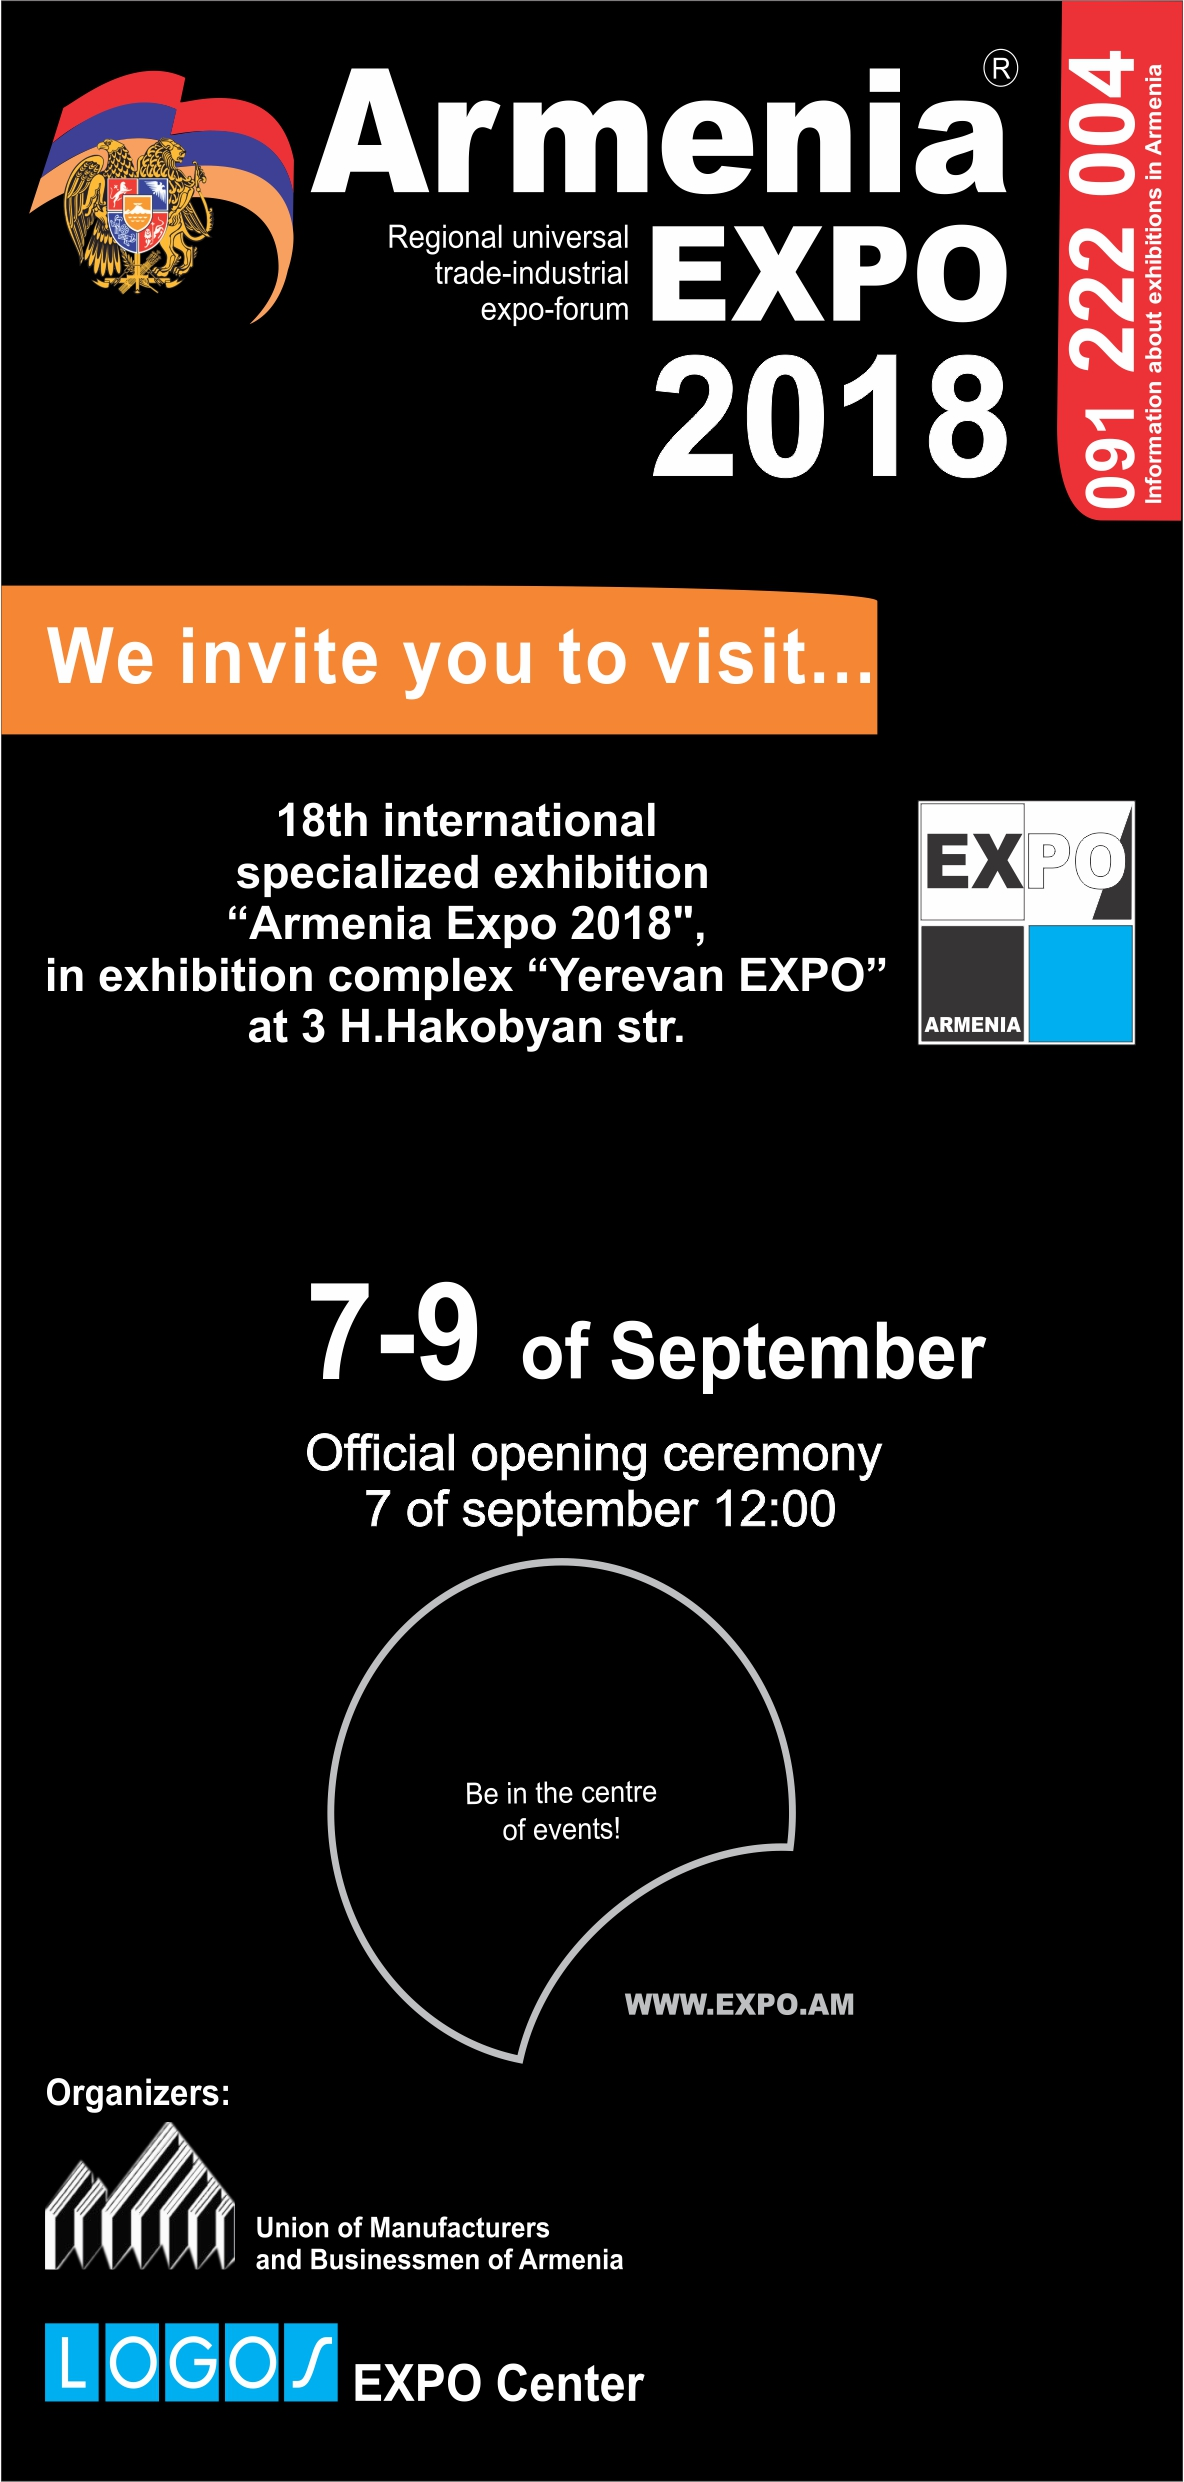 Armenia expo 2018 expo invitation card in the exhibition stopboris Gallery